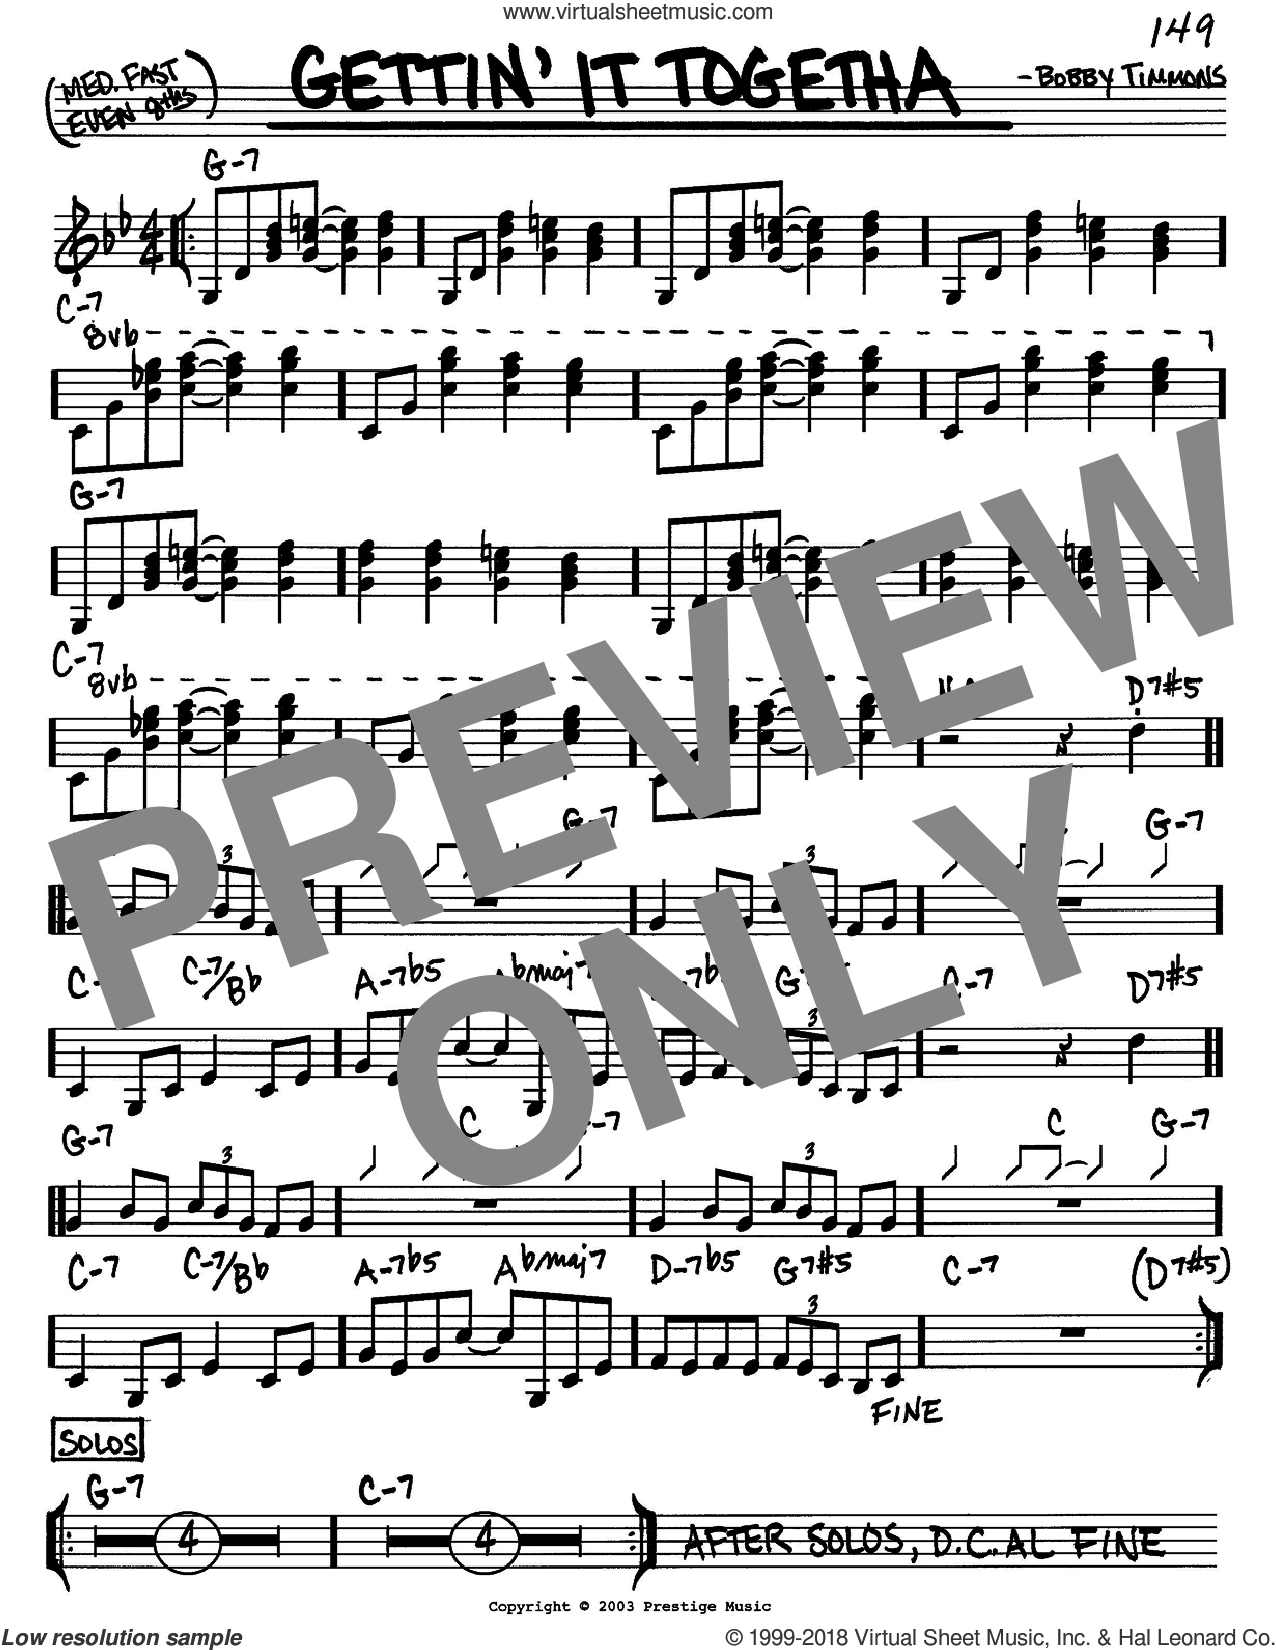 Gettin' It Togetha sheet music for voice and other instruments (C) by Bobby Timmons. Score Image Preview.